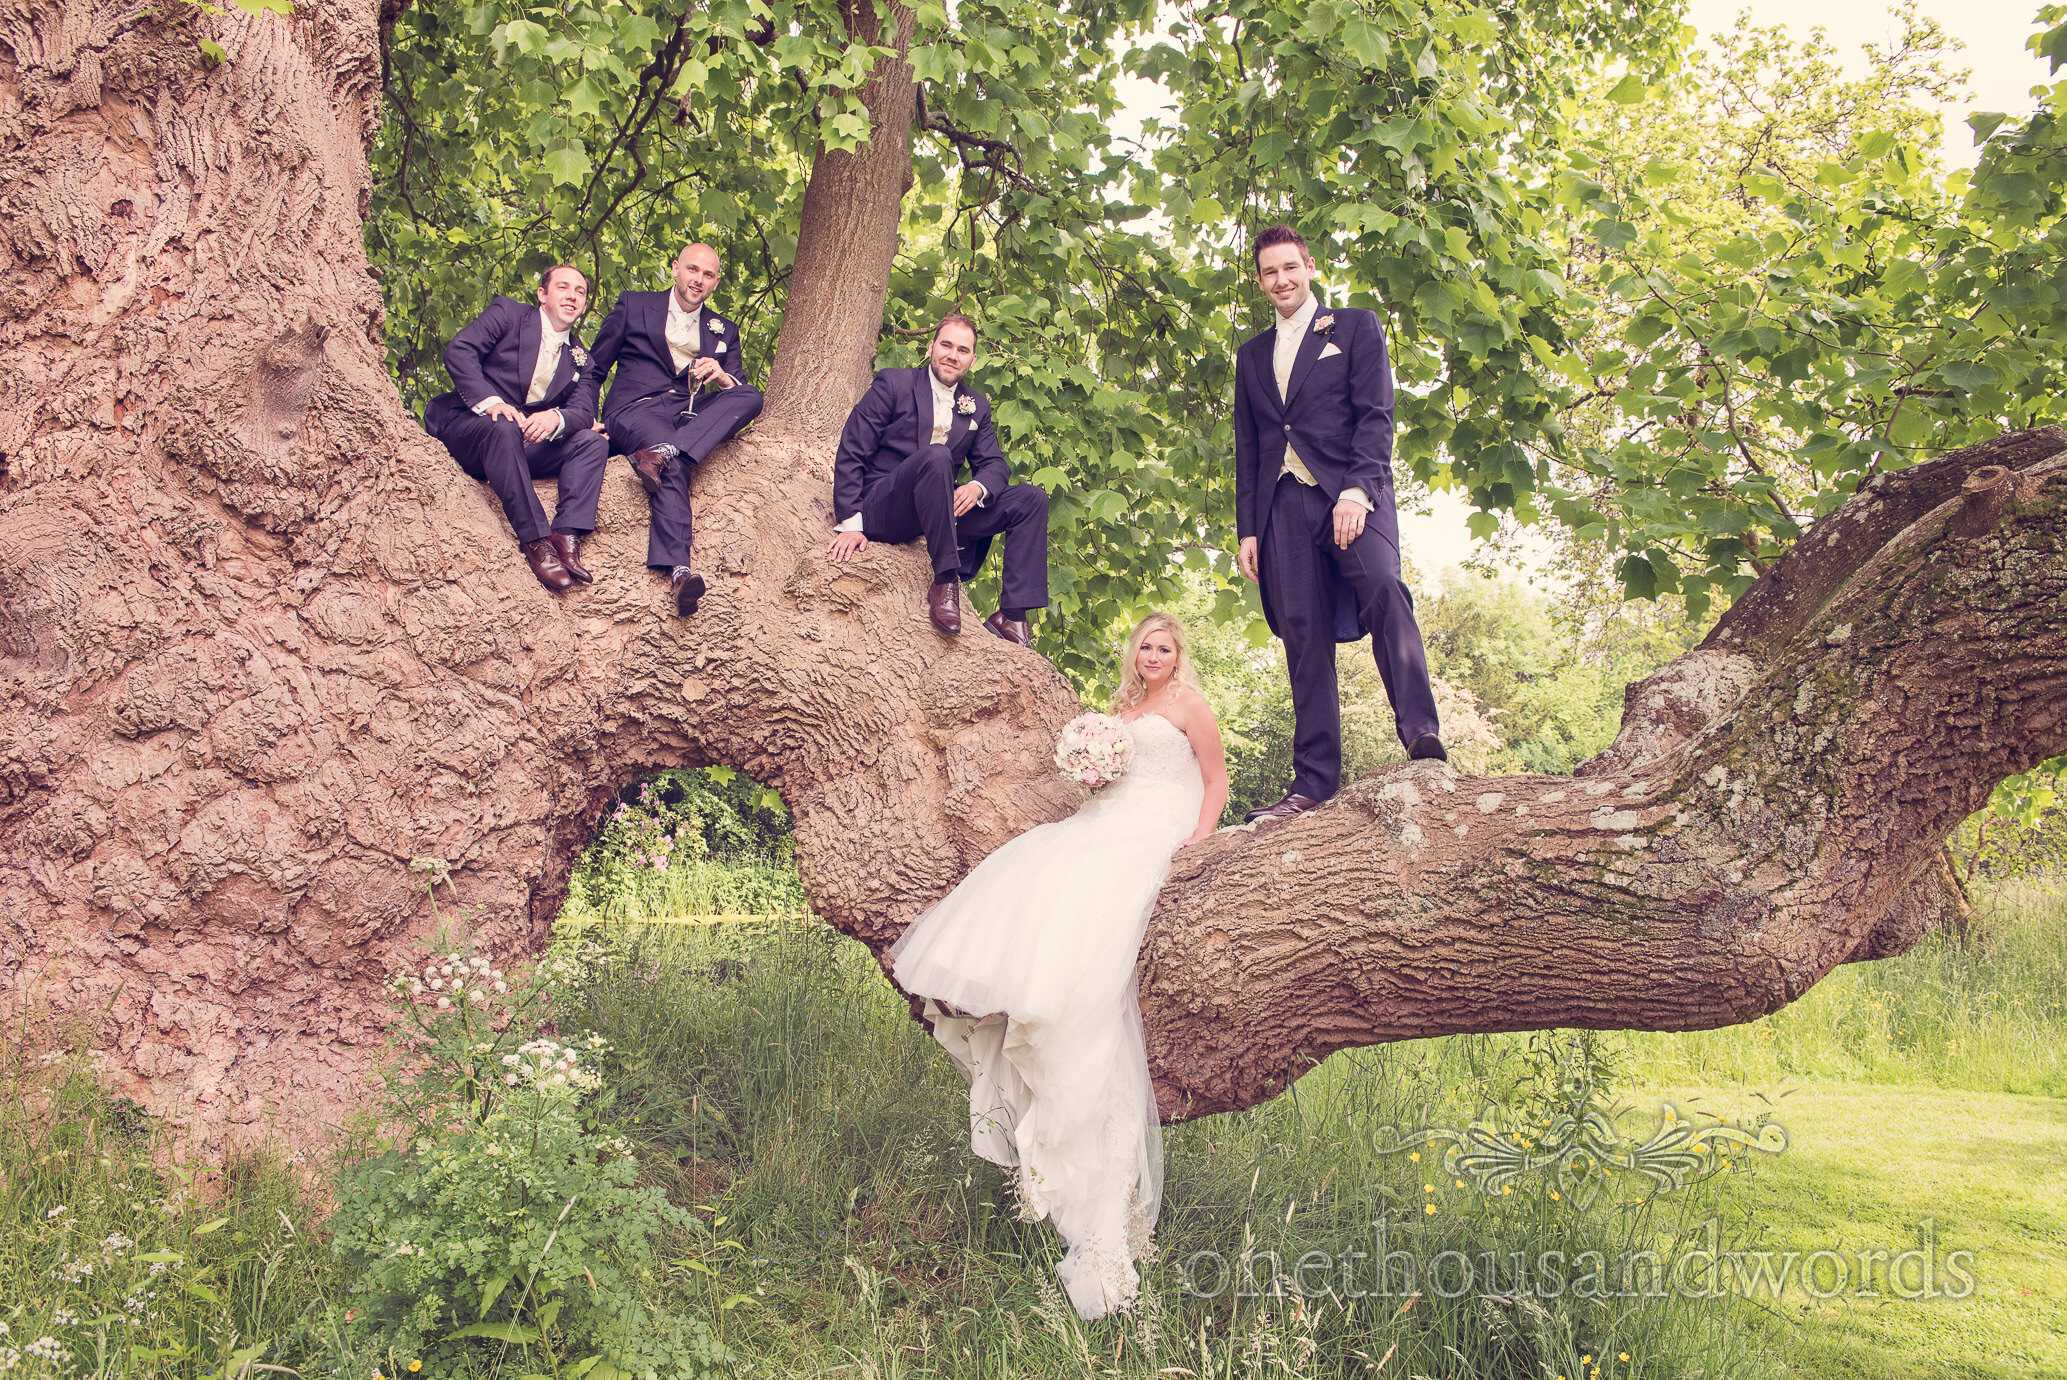 Bride, groom and groomsmen in a tree at Deans Court Wedding venue